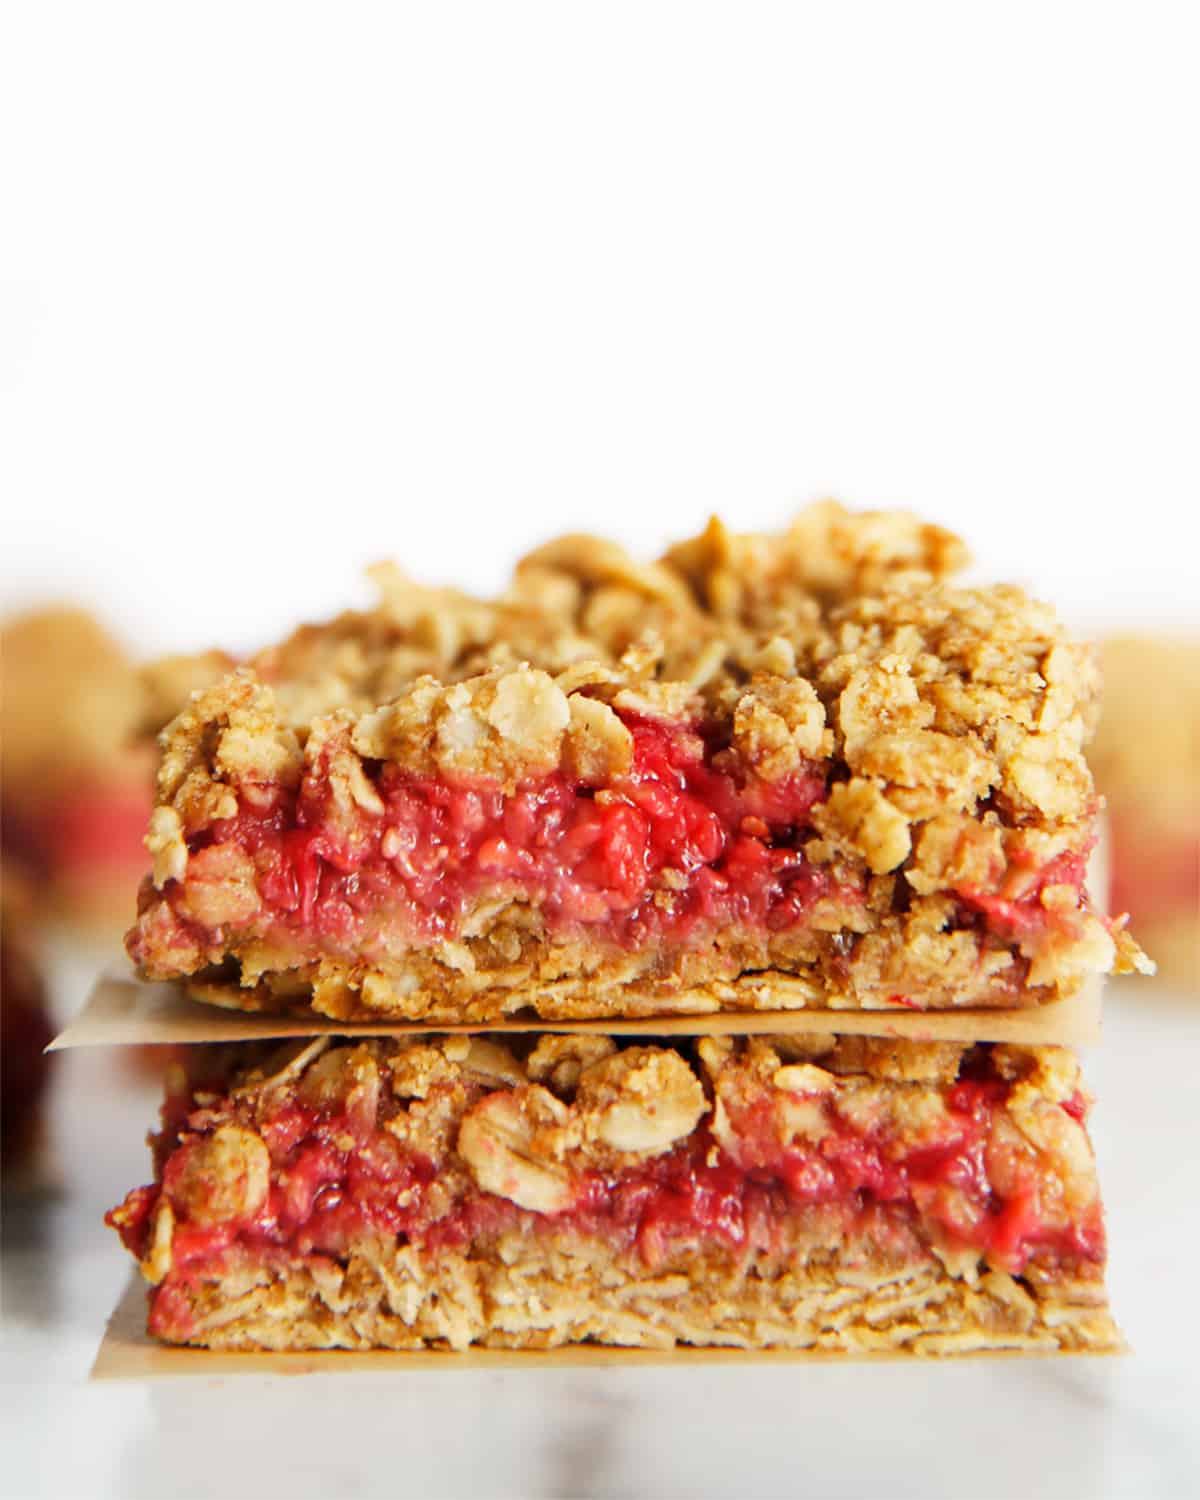 Raspberry breakfast bars stacked on top of one another.